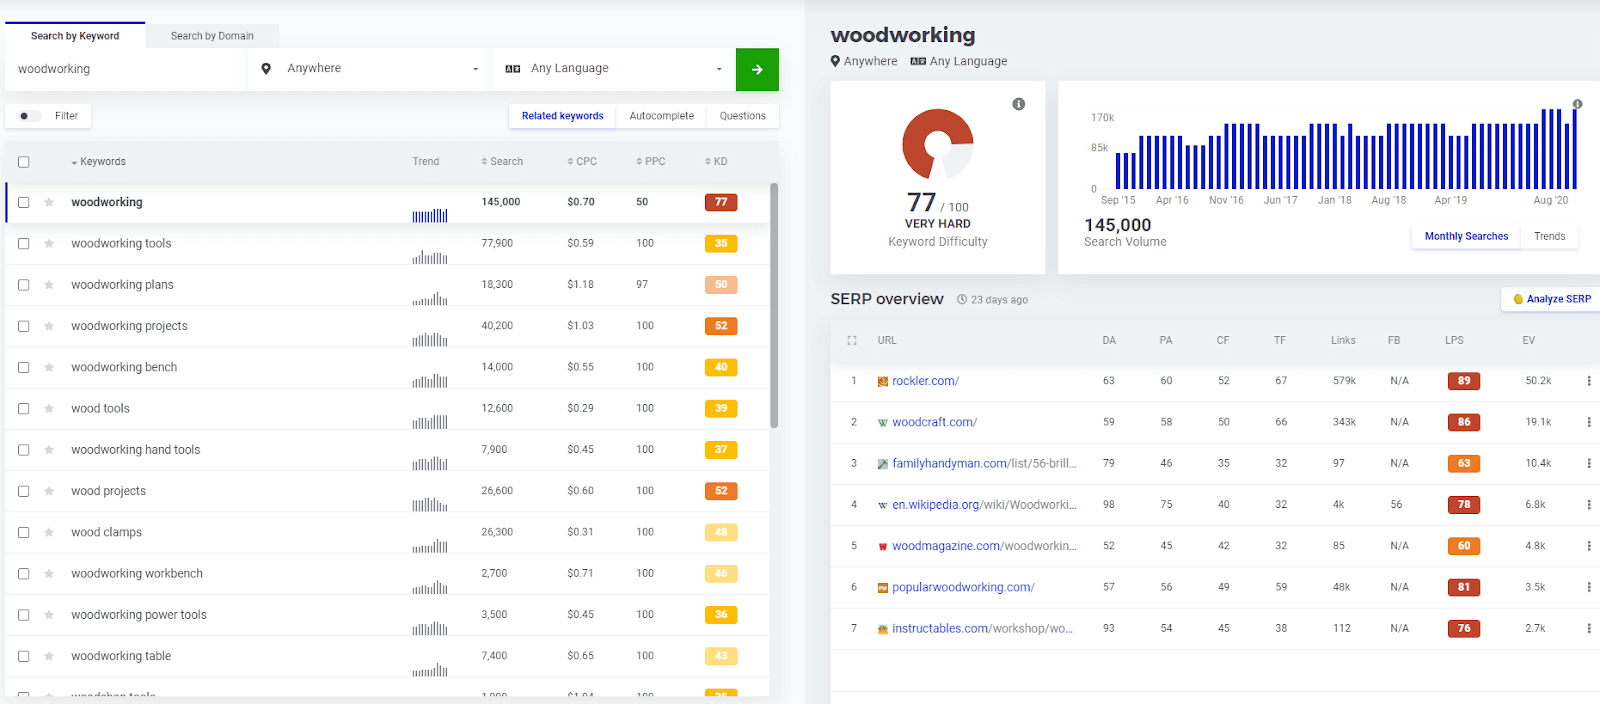 Search by keyword and get detailed insights into related keywords, trends, and more